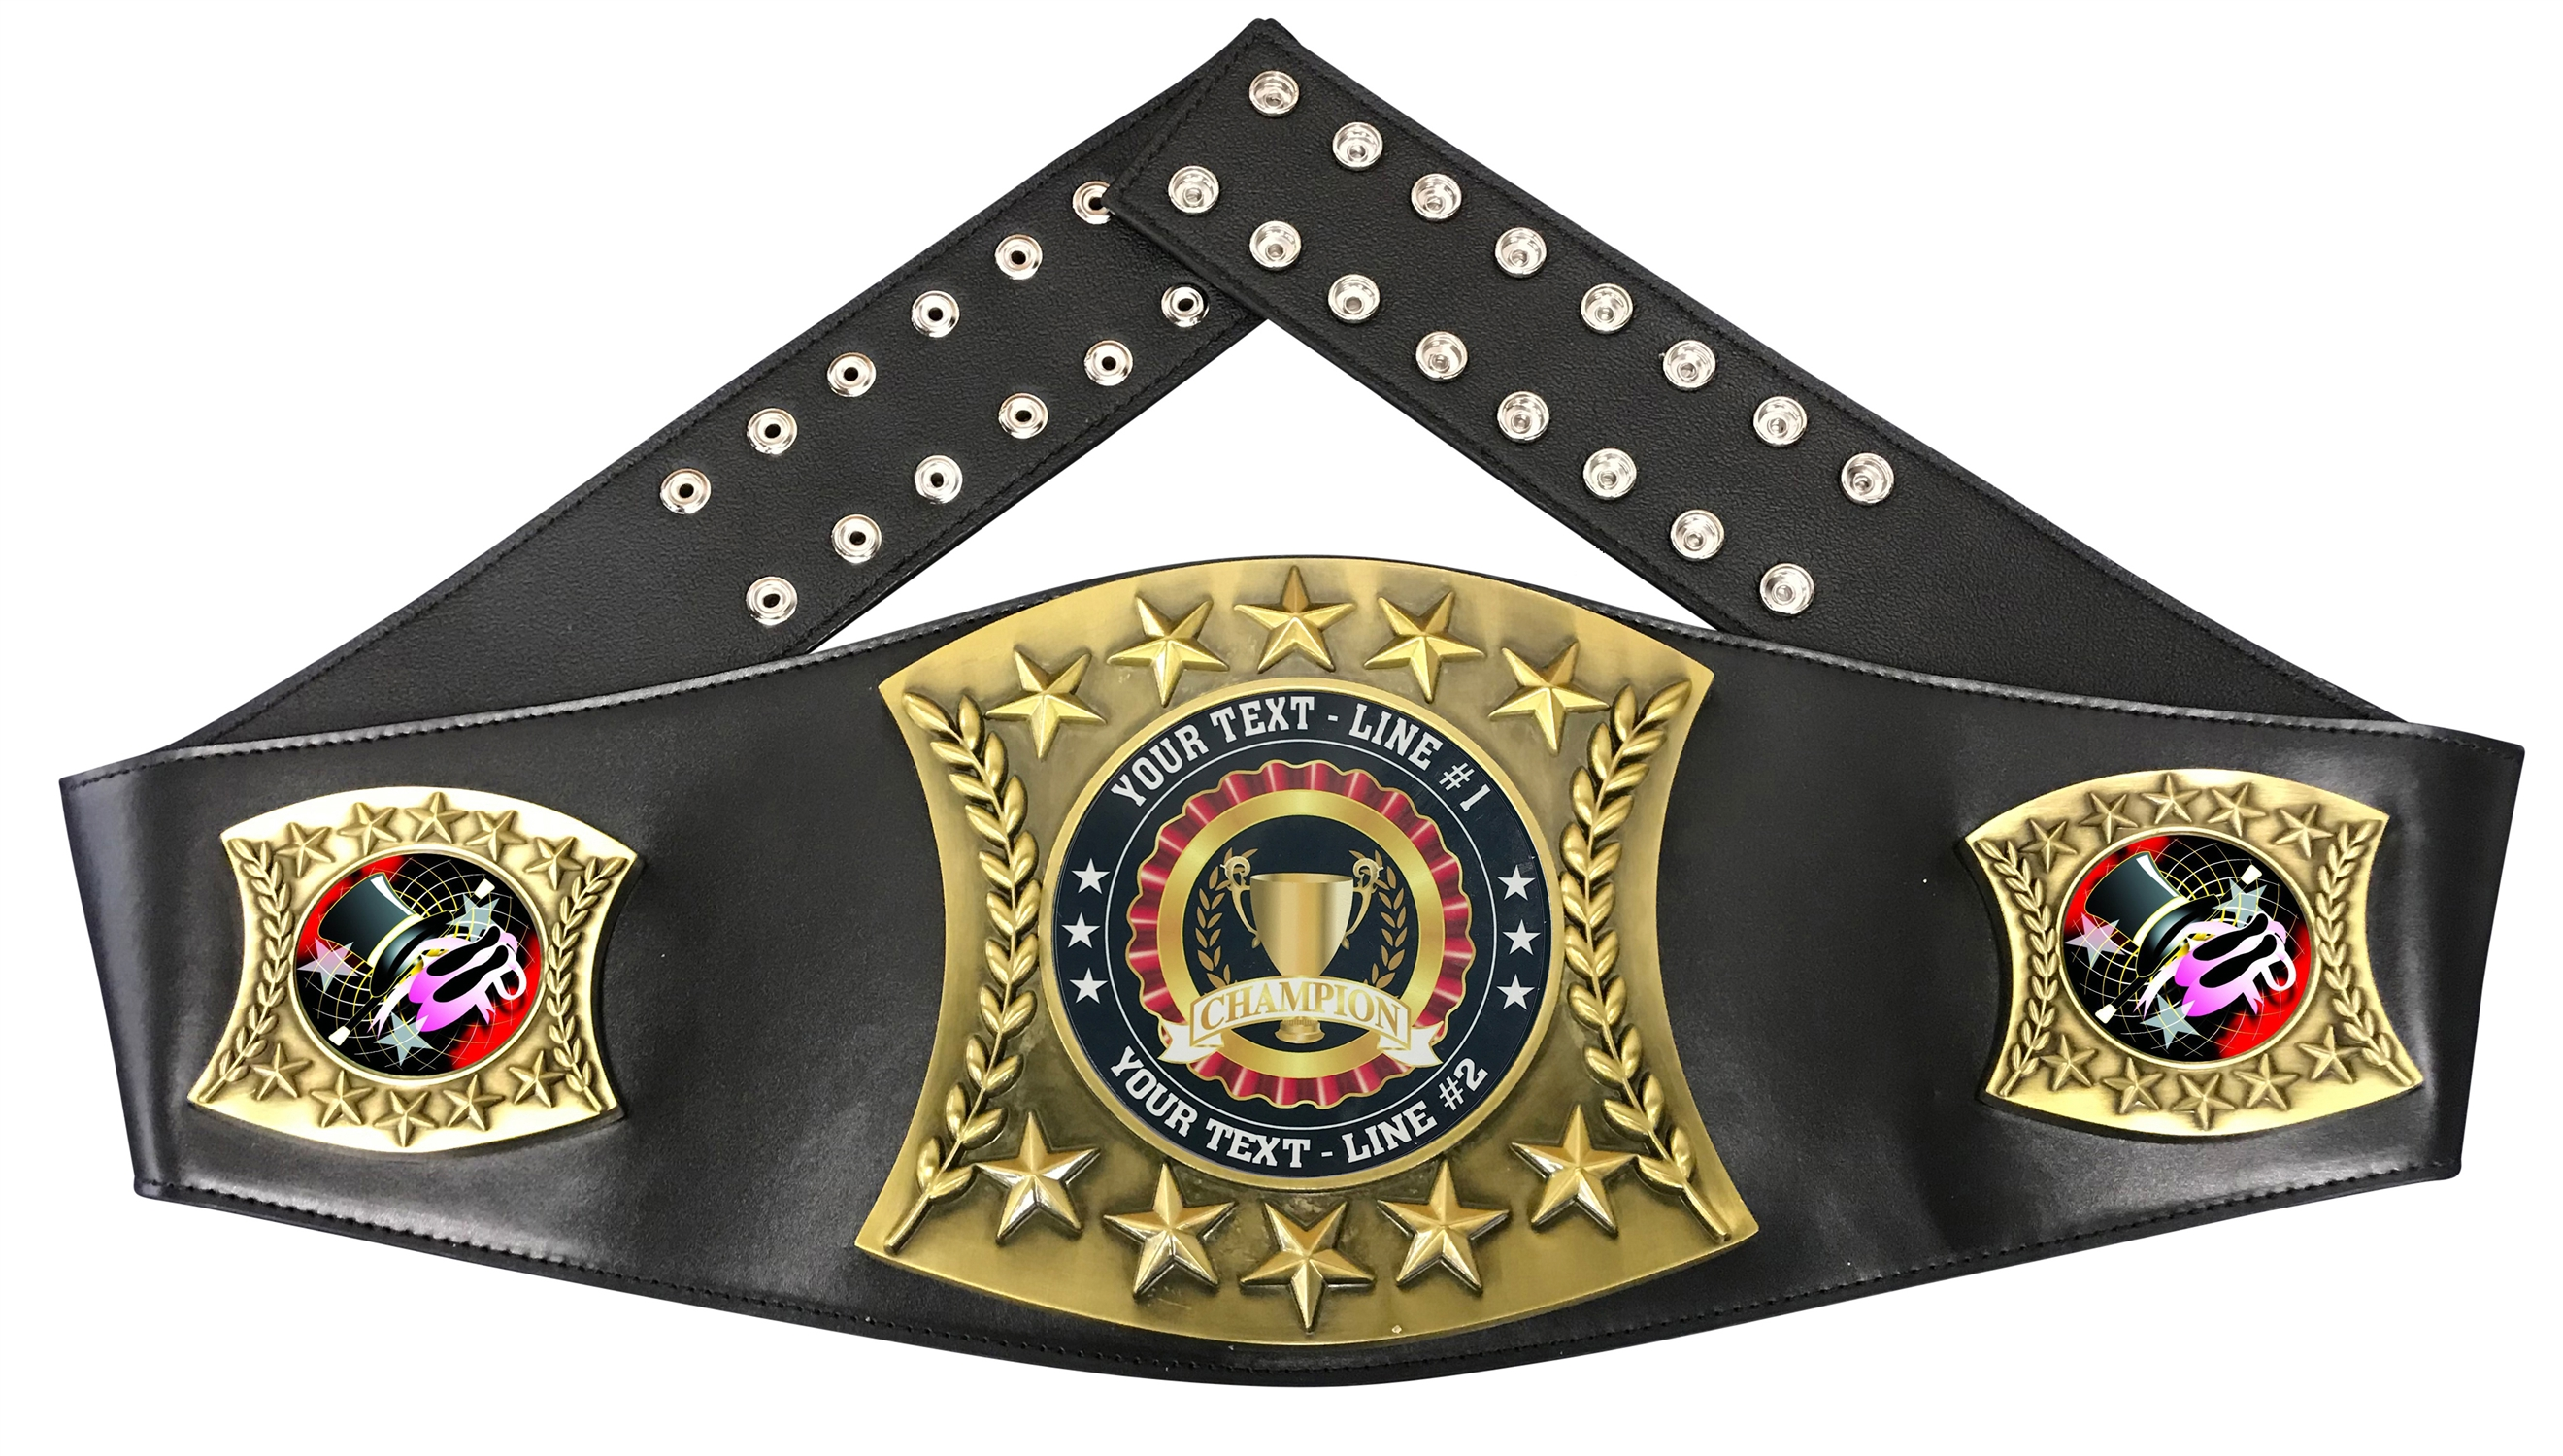 Dance Personalized Championship Belt